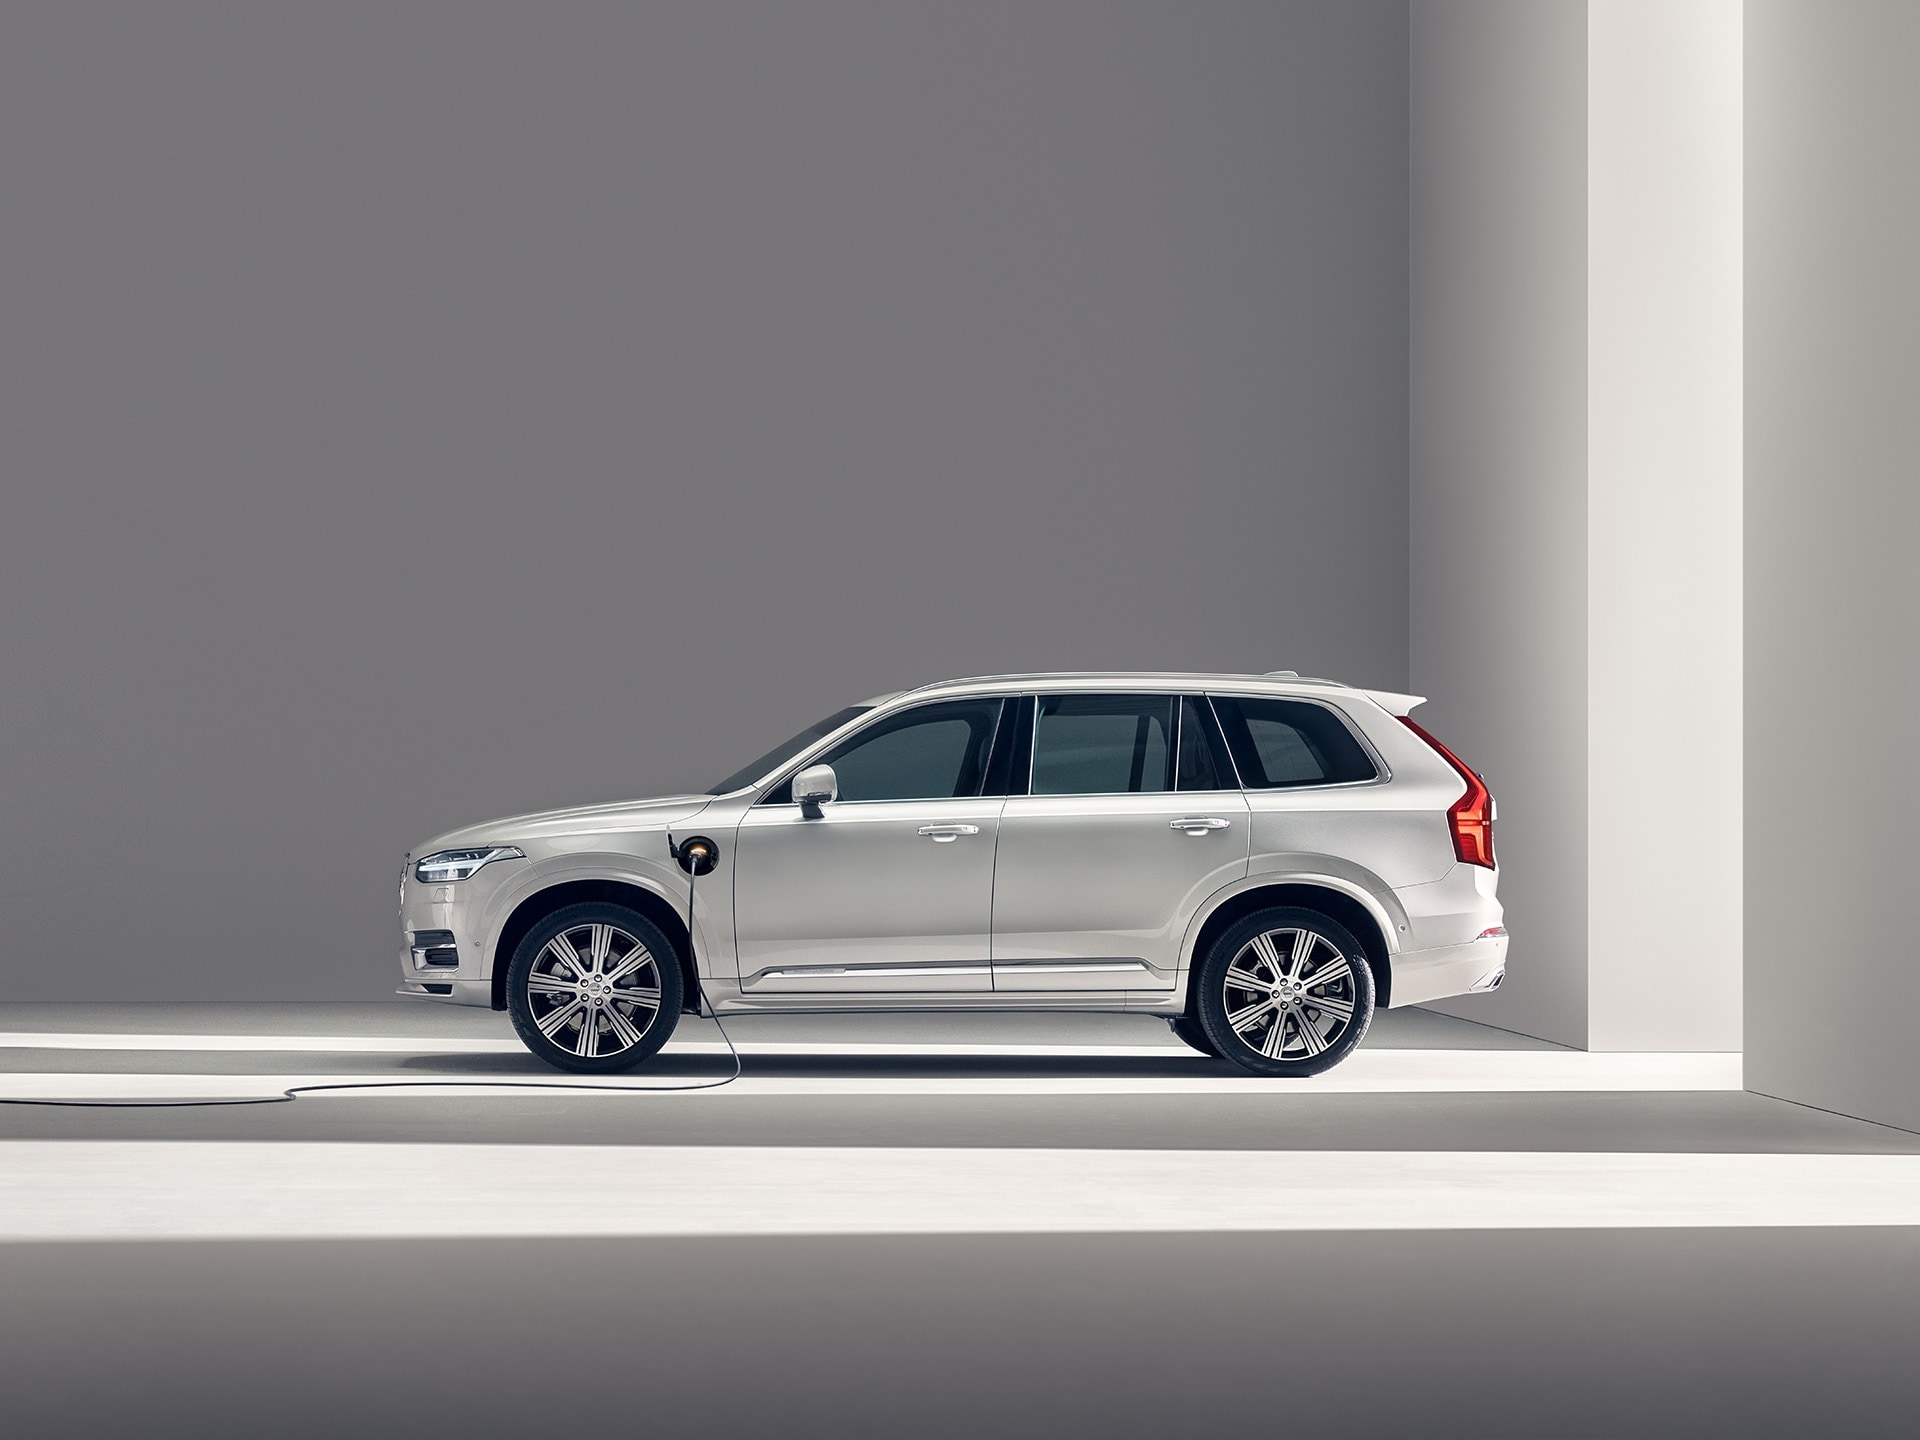 A Volvo XC90 Recharge being charged